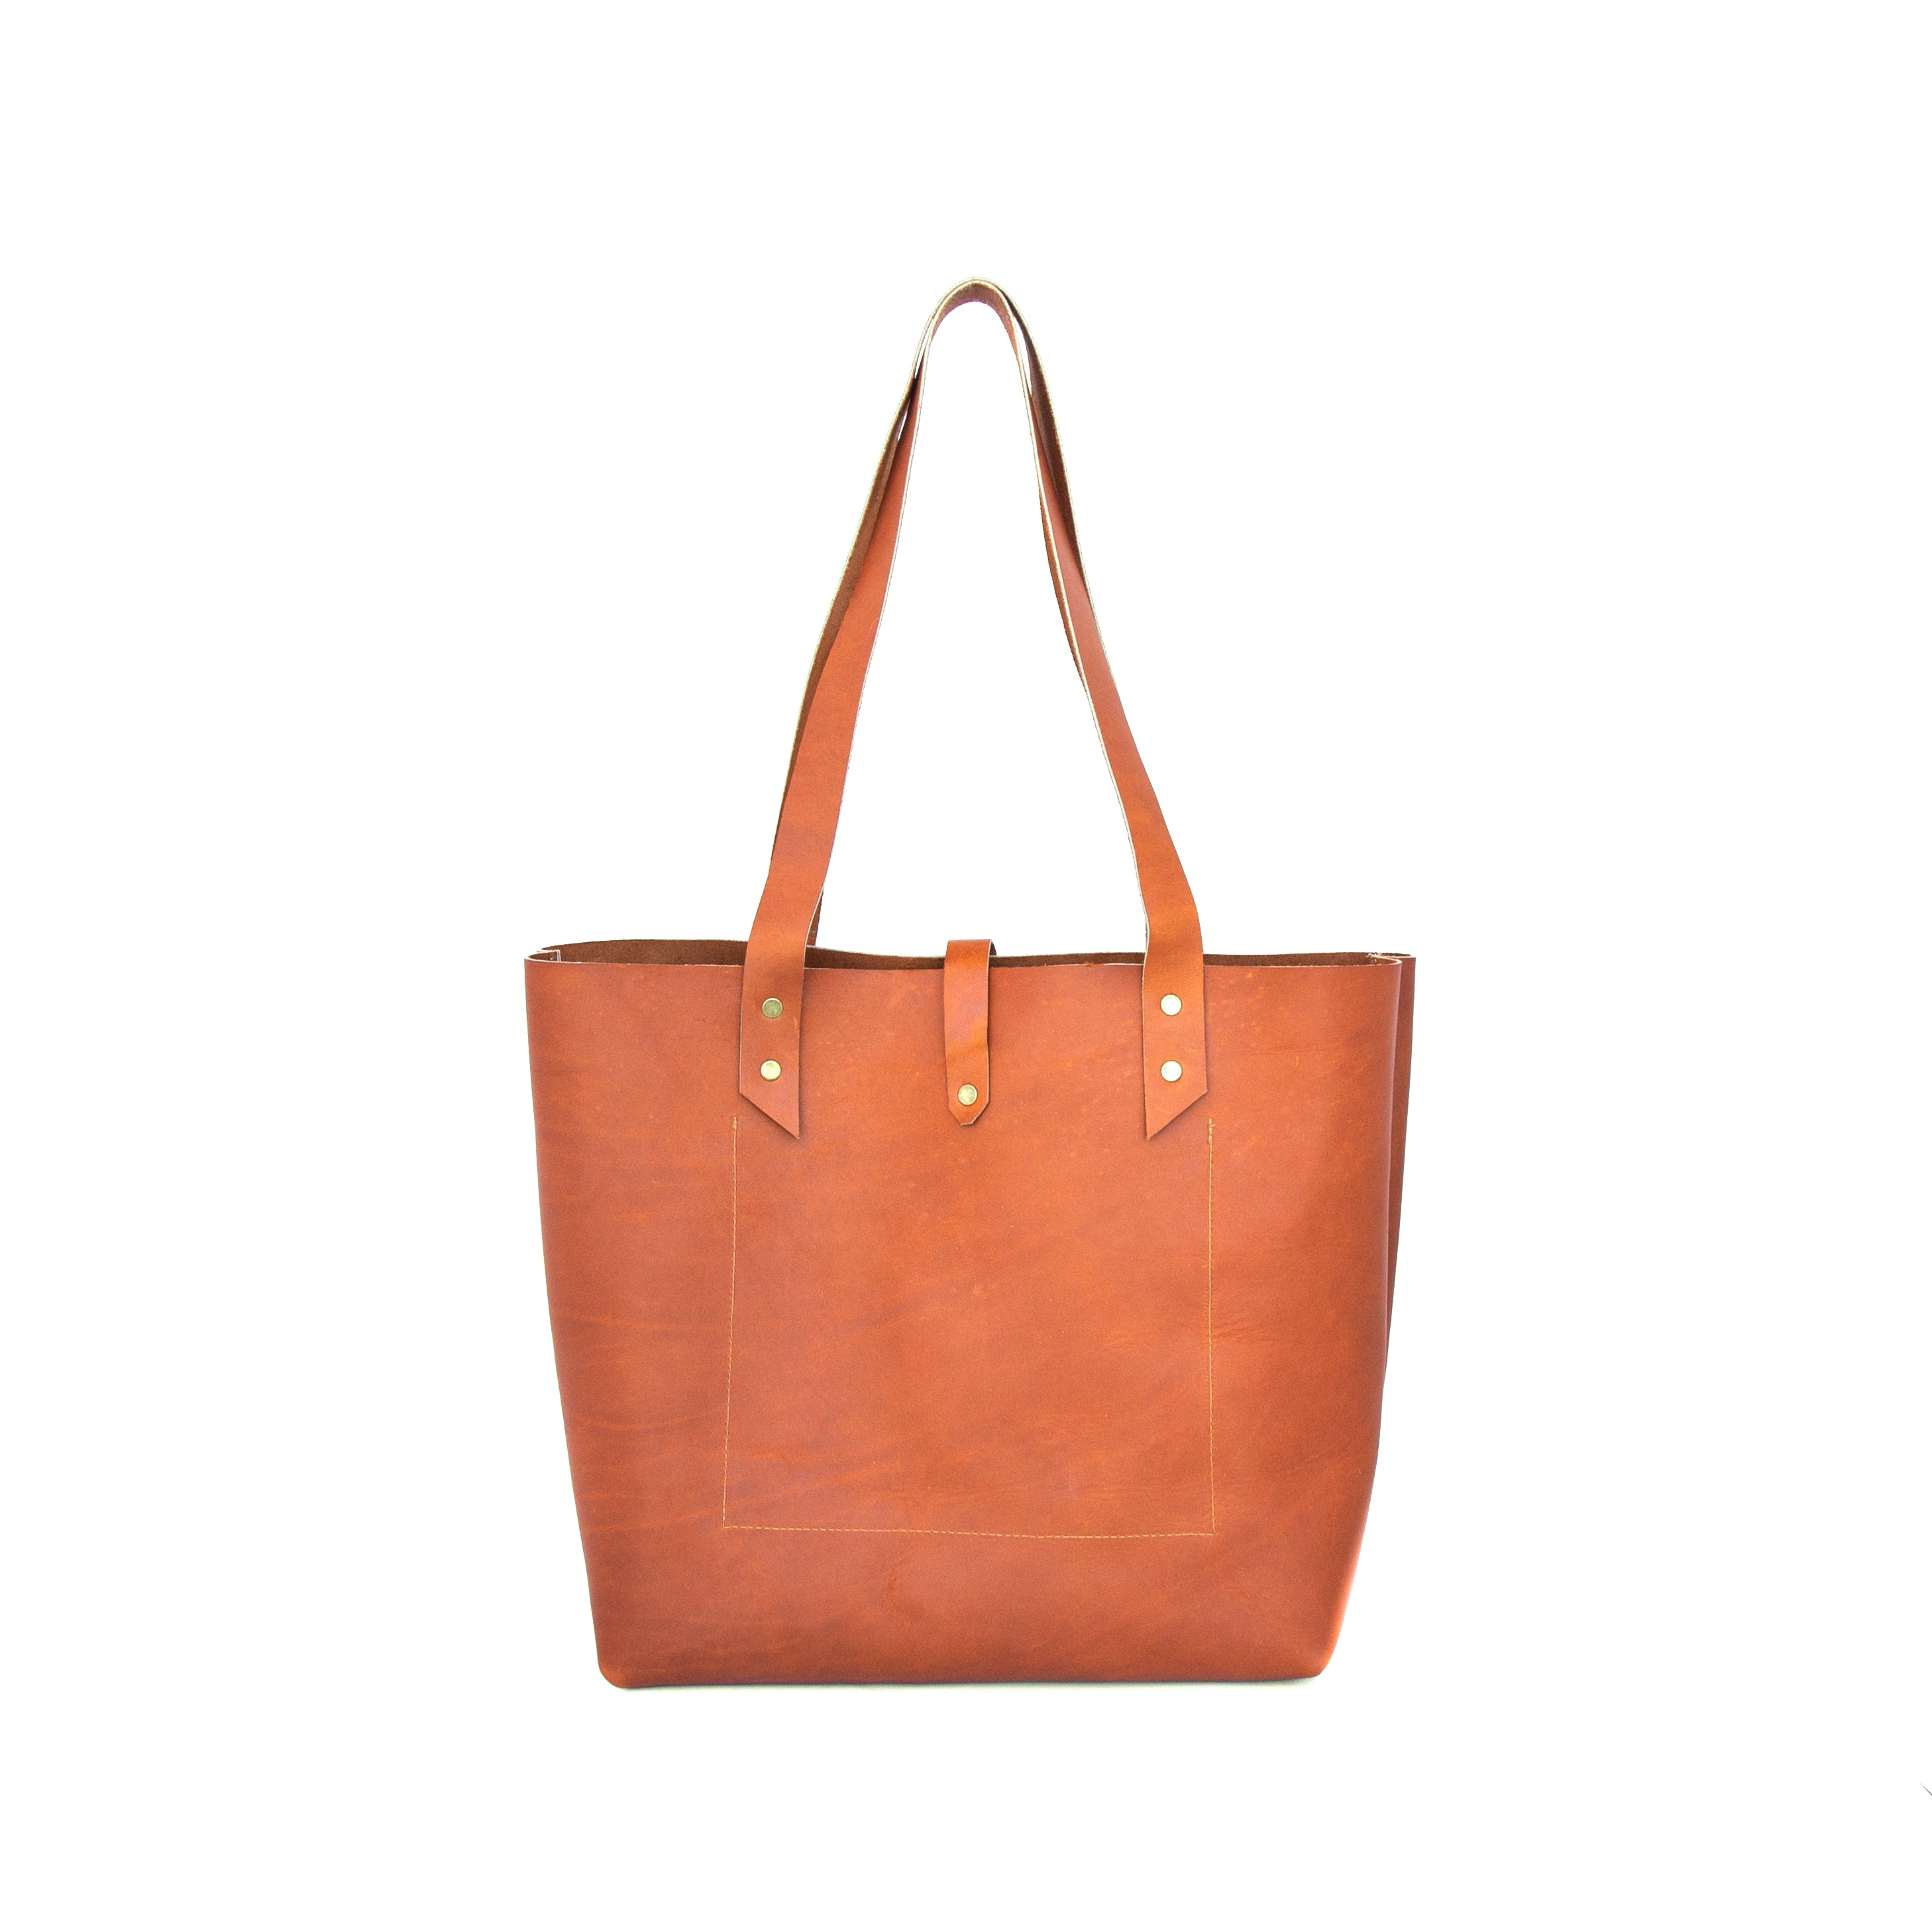 Classic Tote in Ochre Leather - handcrafted by Market Canvas Leather in Tofino, BC, Canada